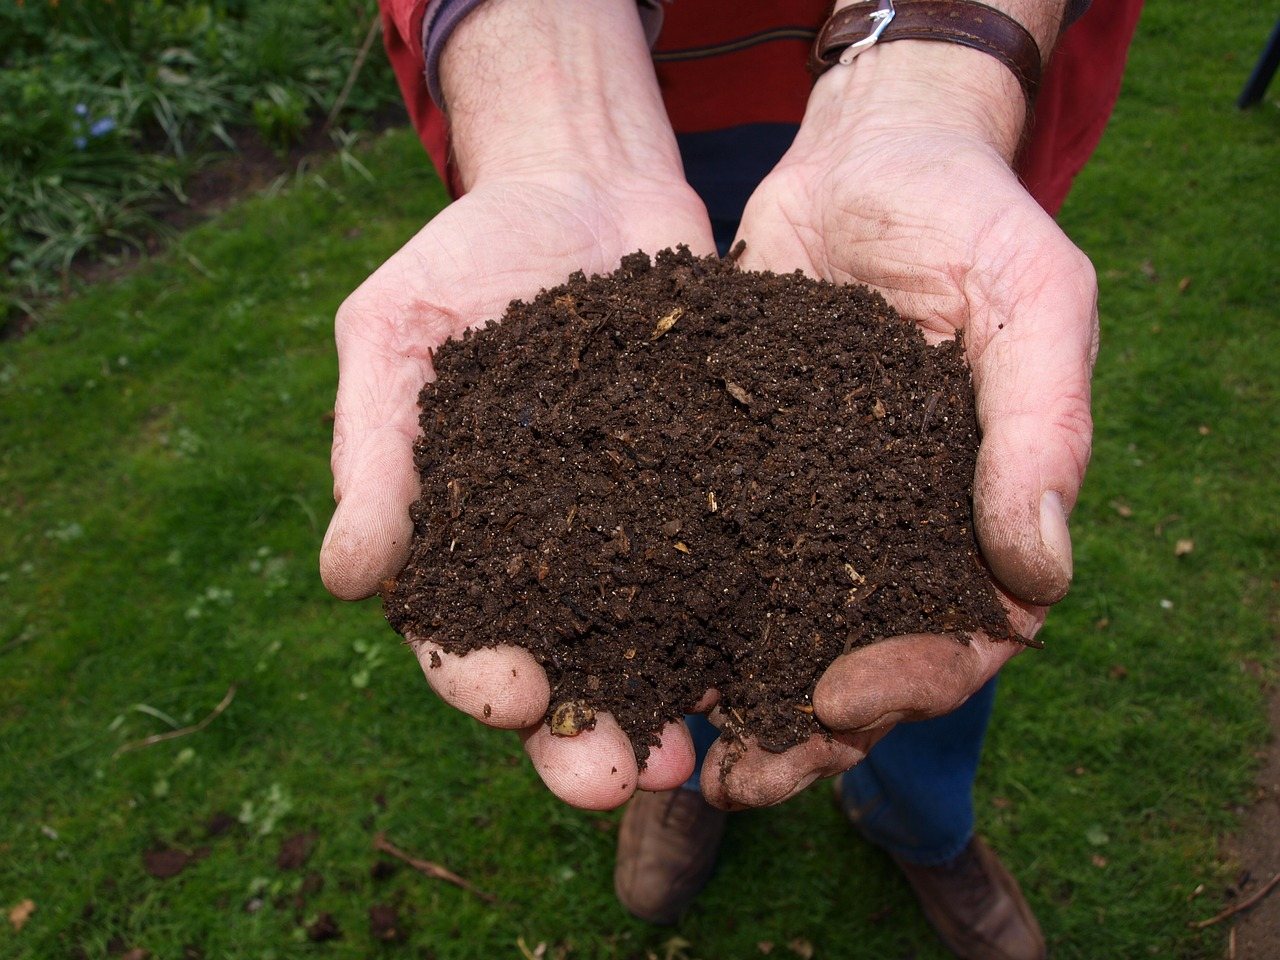 compost as part of DIY potting soil mix